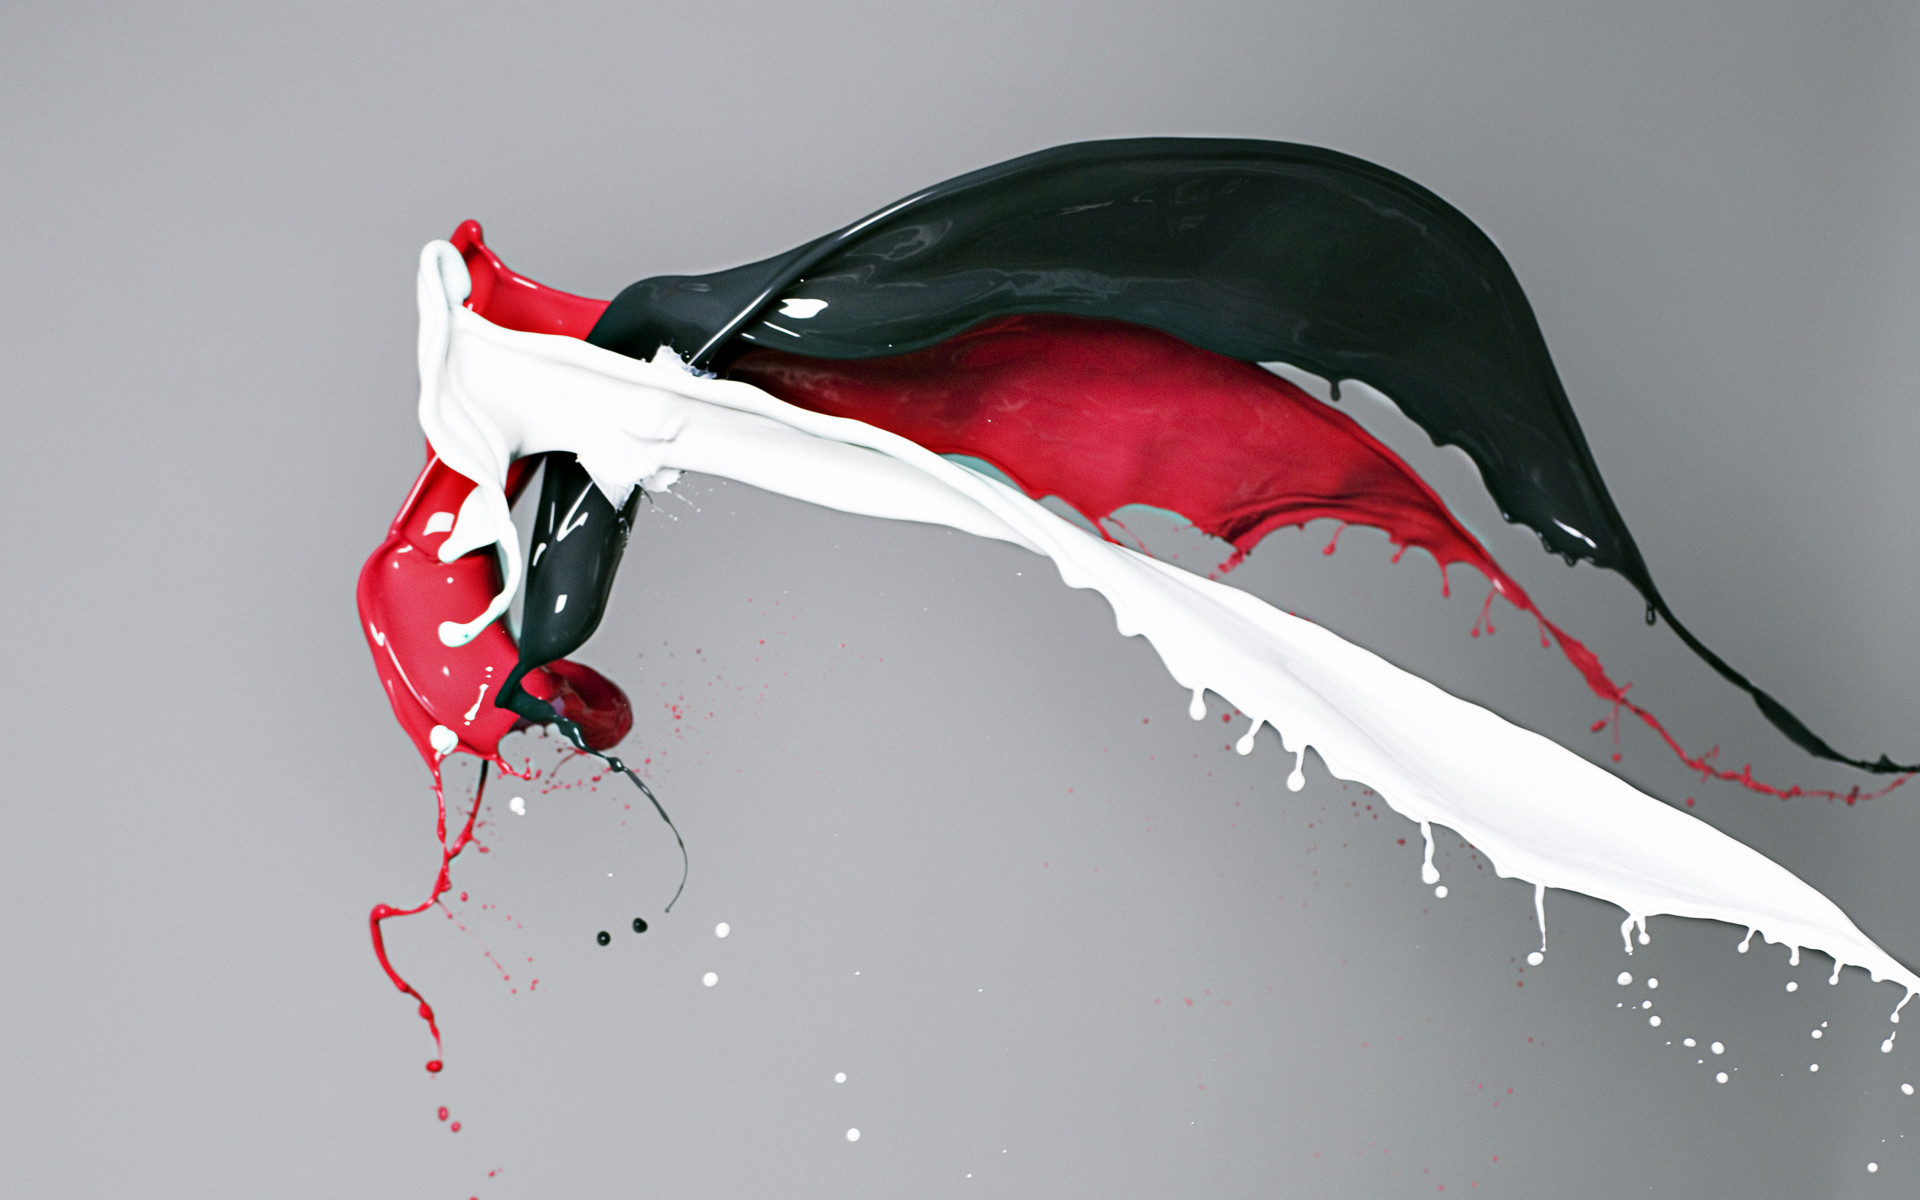 Red white and black paint colliding HD Wallpaper (1920×1200)